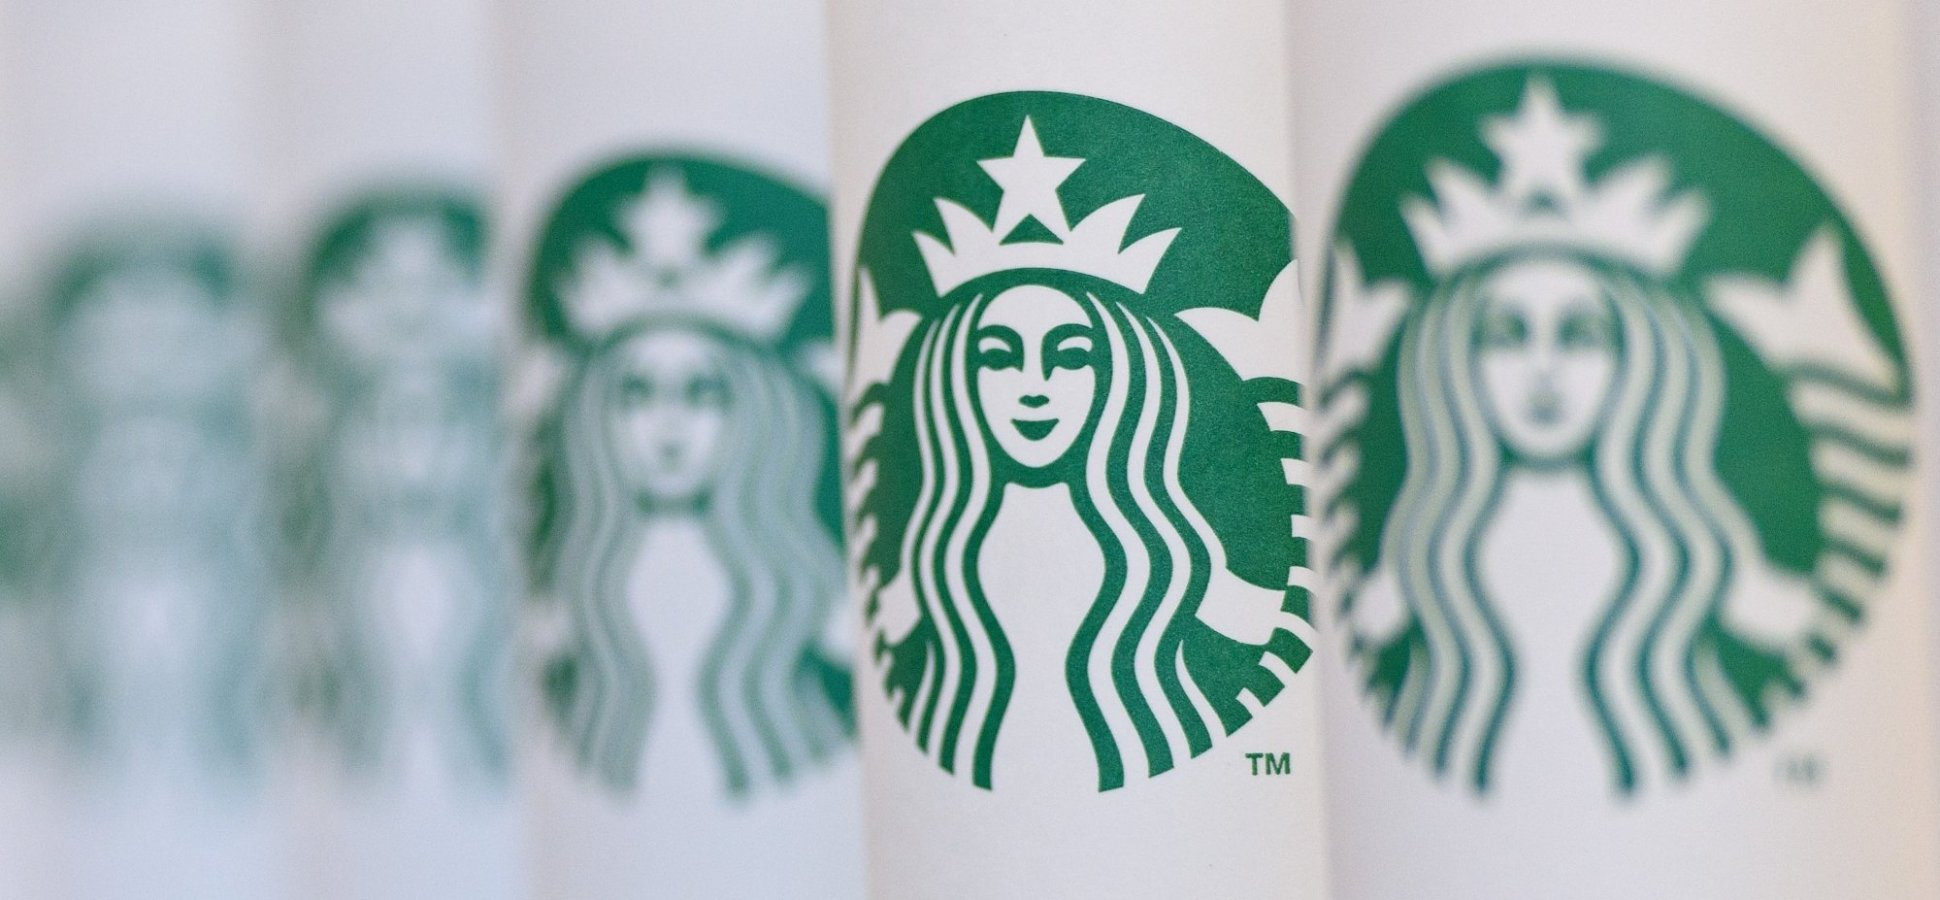 Starbucks Just Made a Major Announcement That Will Stun Customers